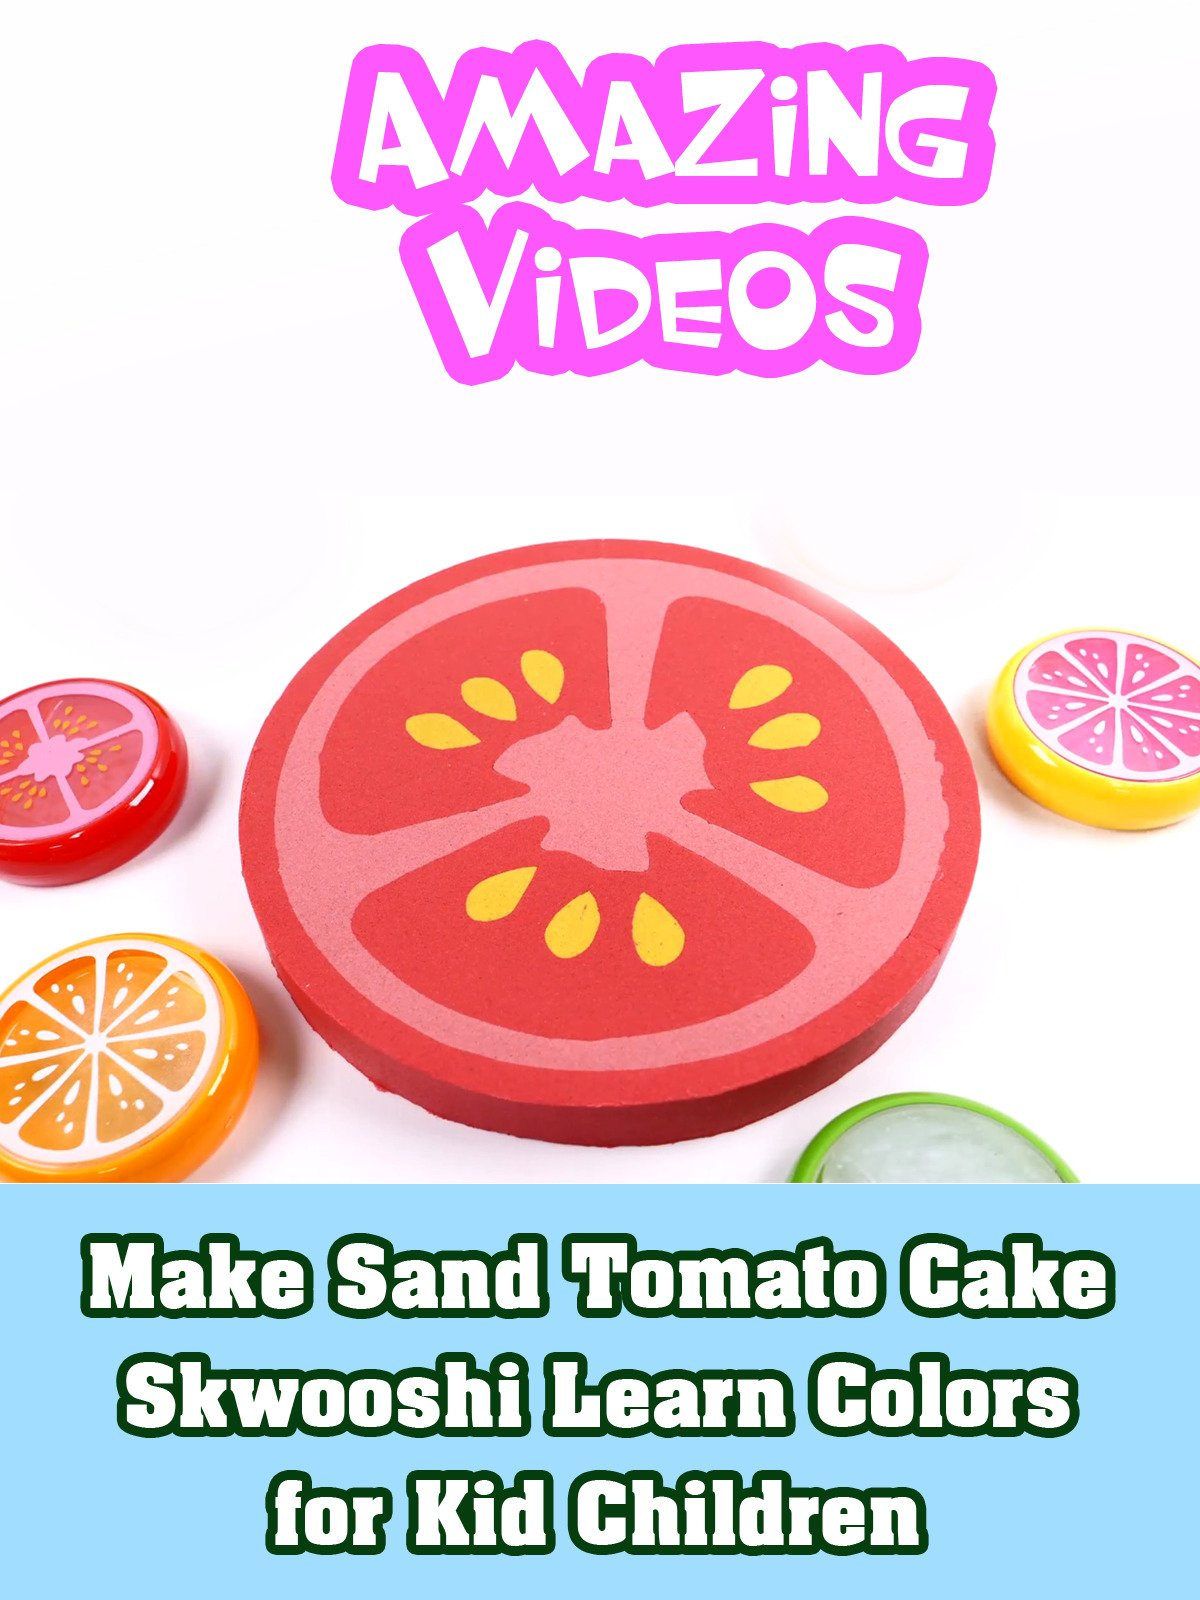 Make Sand Tomato Cake Skwooshi Learn Colors for Kid Children